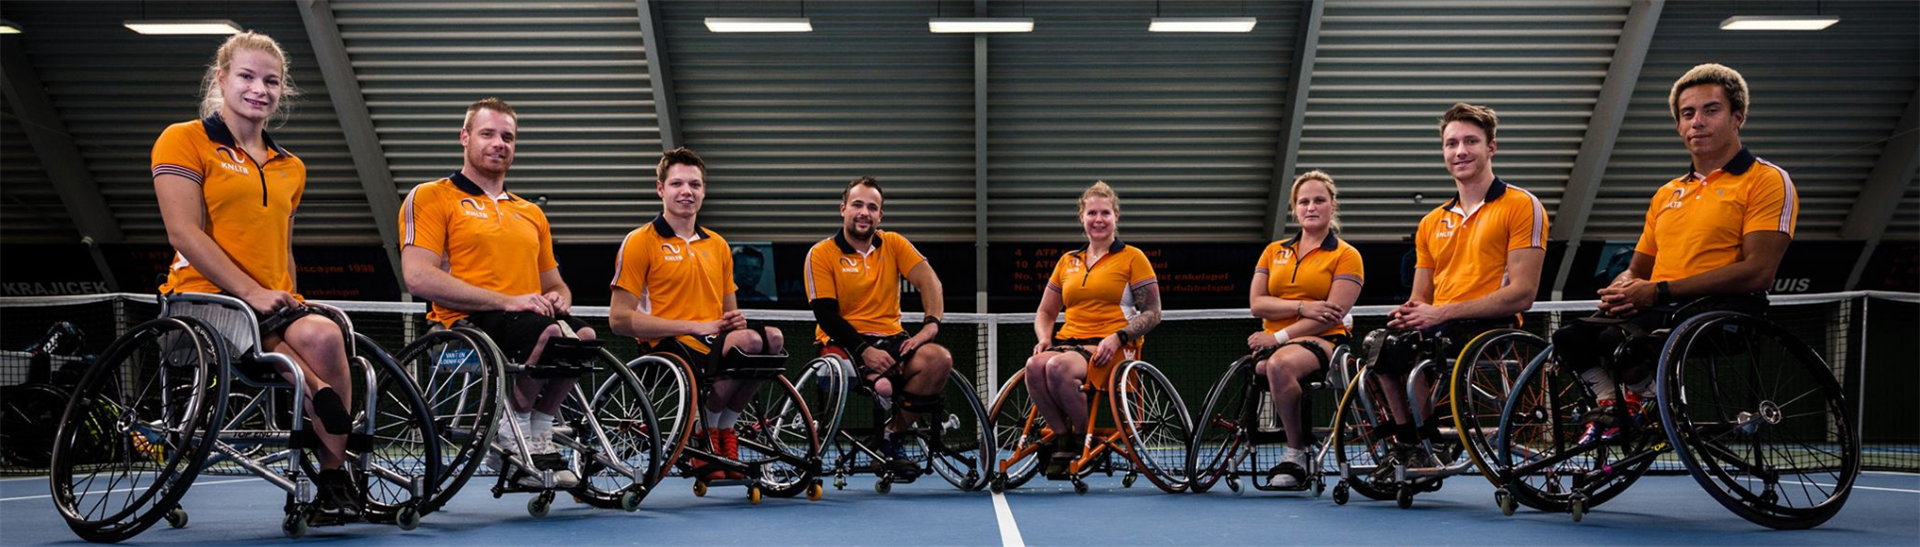 UNIQLO Wheelchair Doubles Masters